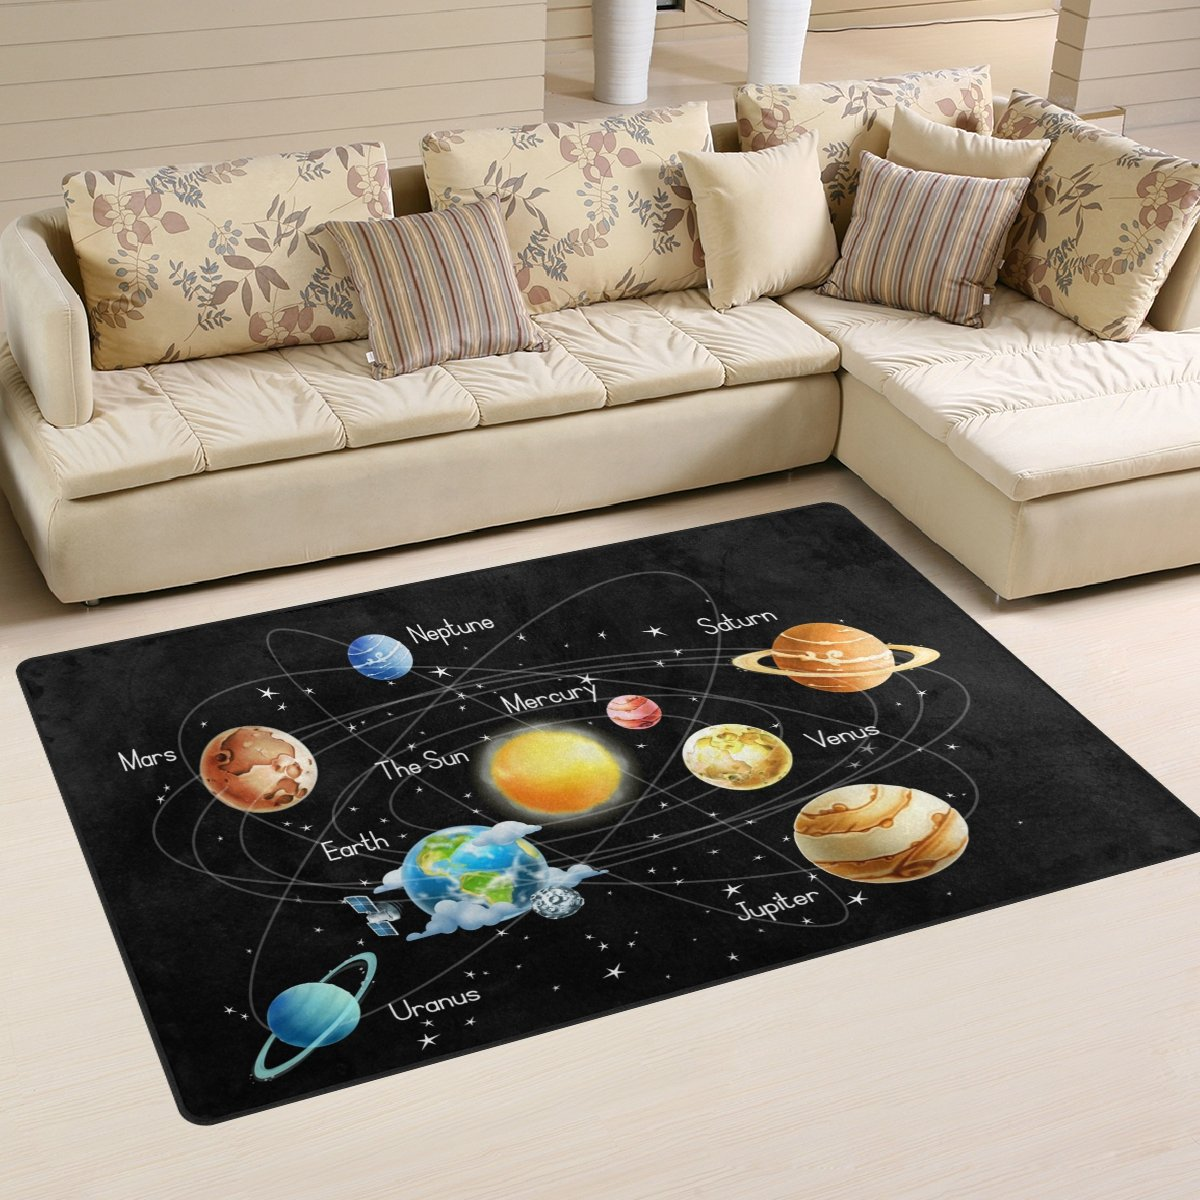 Naanle Solar System Planet Star Non Slip Area Rug for Living Dinning Room Bedroom Kitchen, 50 x 80 cm(1.7' x 2.6' ft), Universe Galaxy Nursery Rug Floor Carpet Yoga Mat